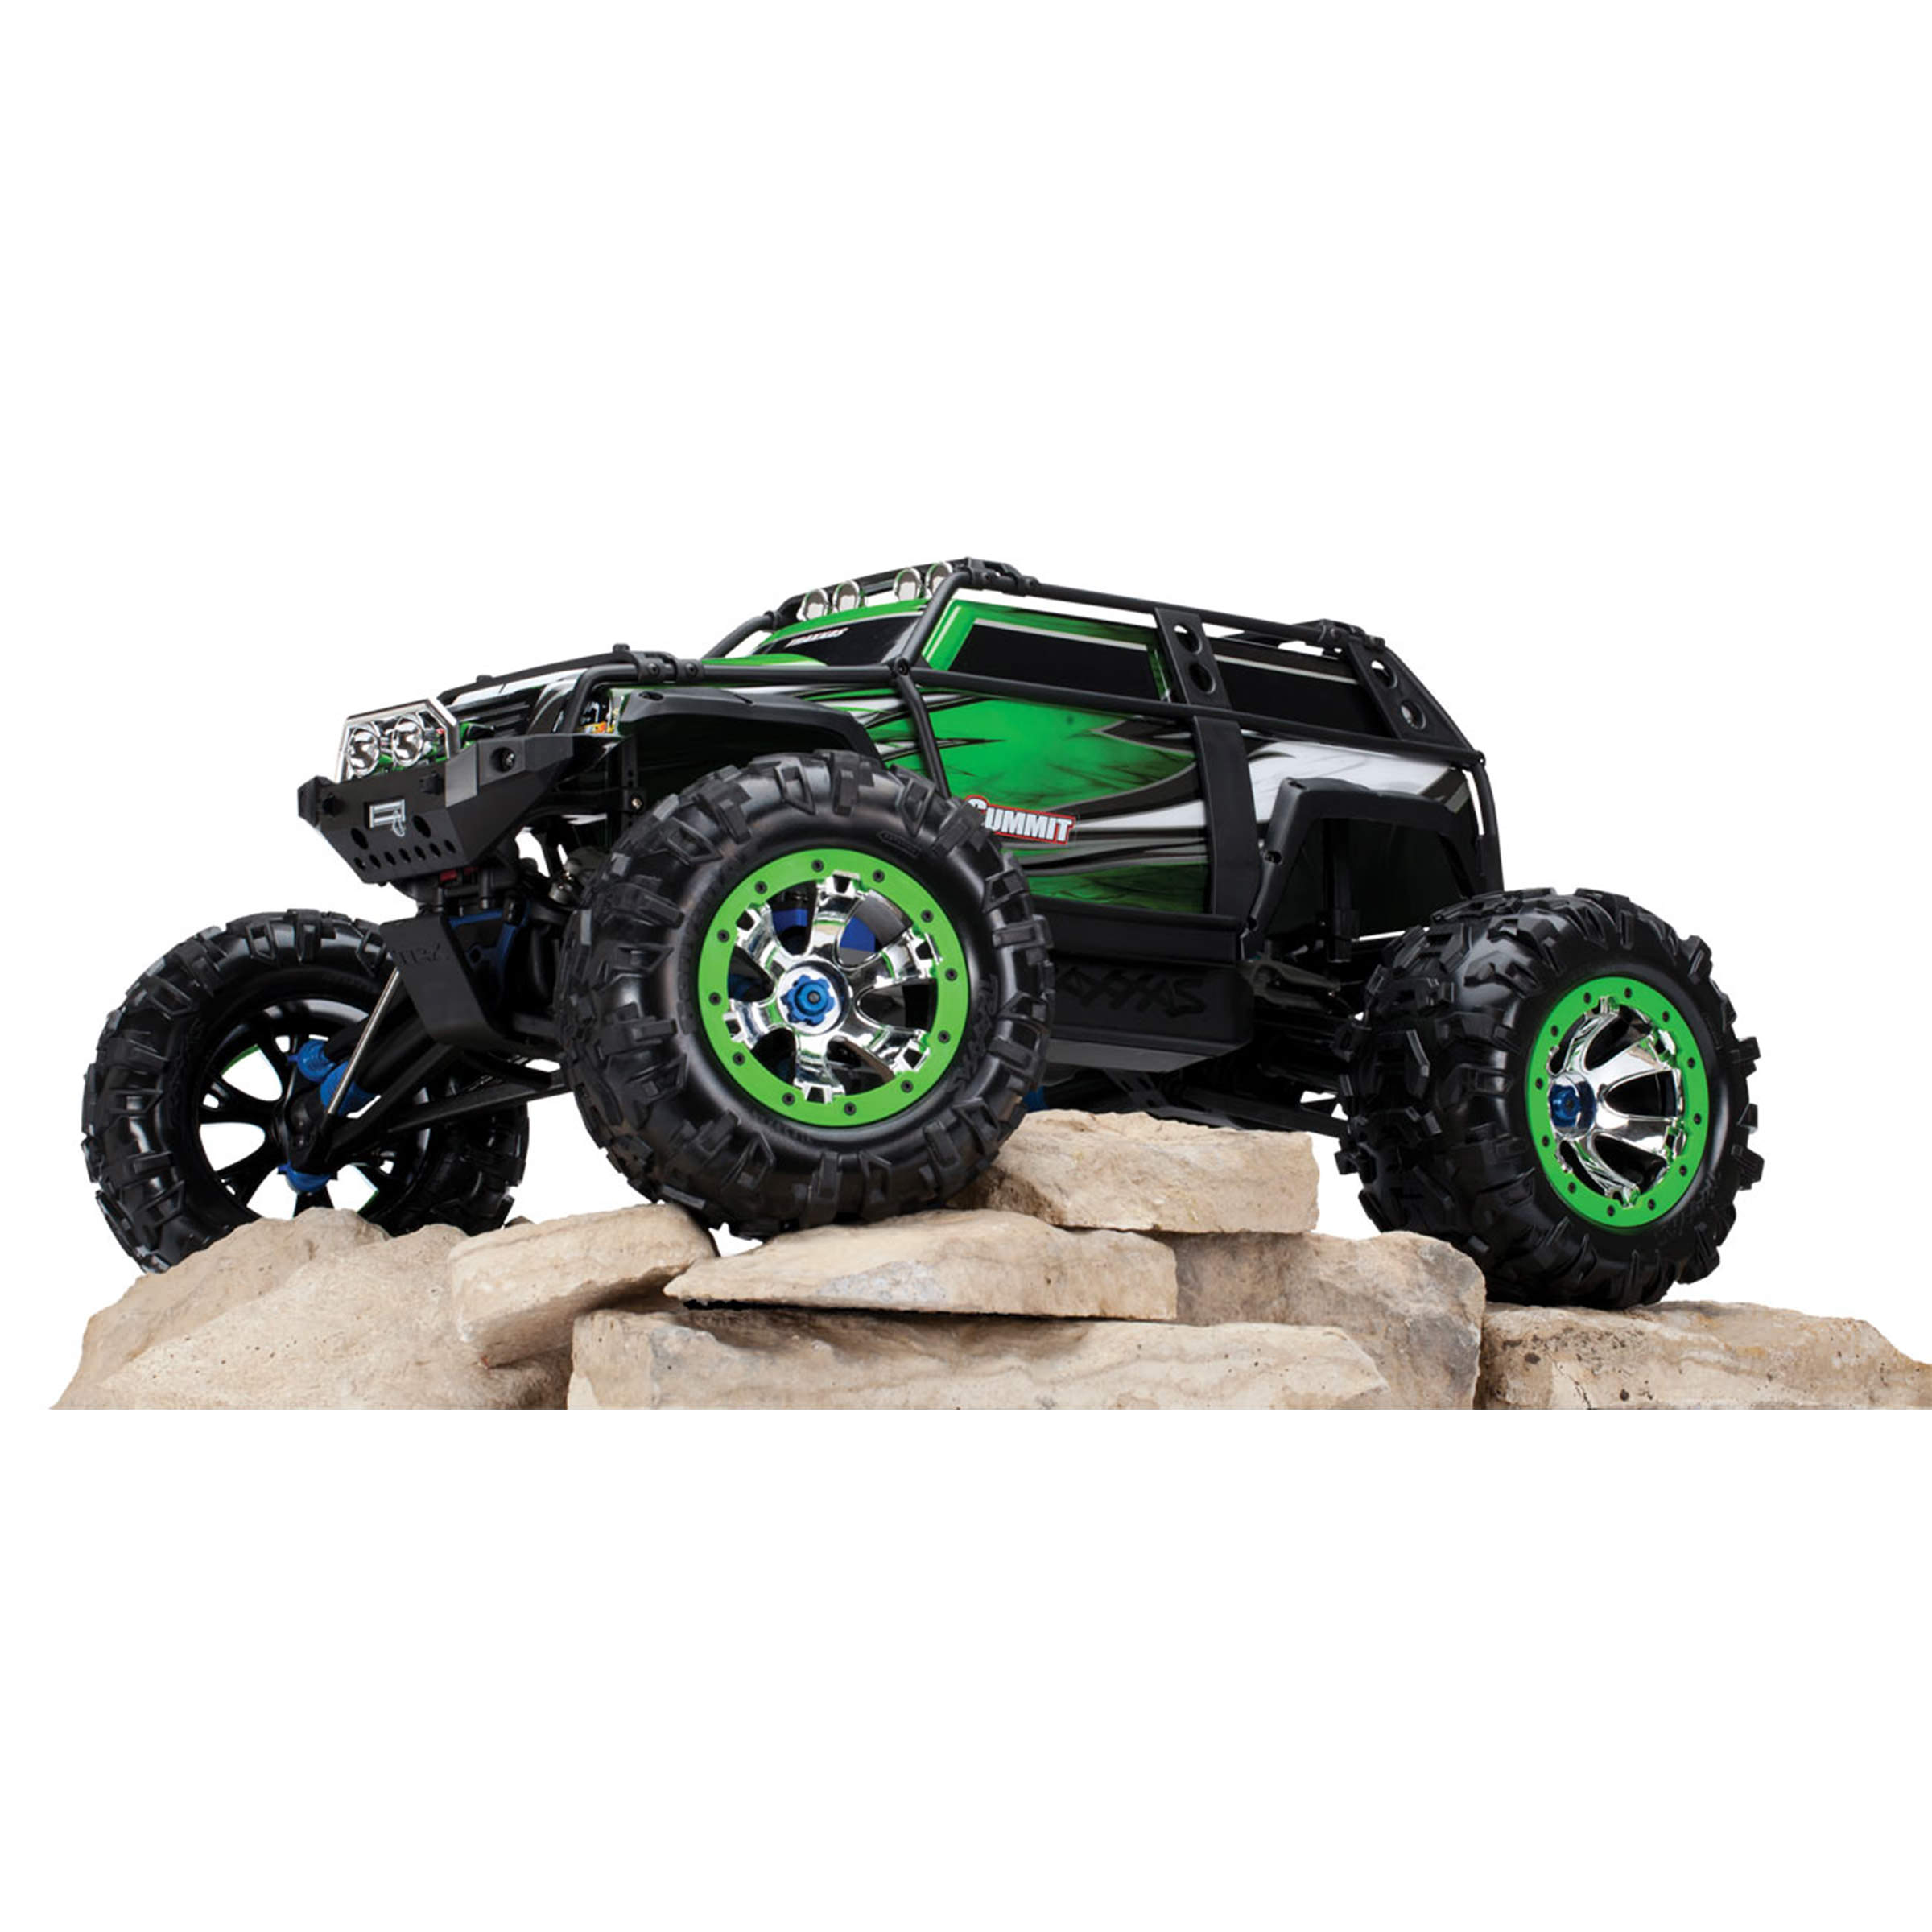 Traxxas 5607 Summit Green Rc Truck At Hobby Warehouse